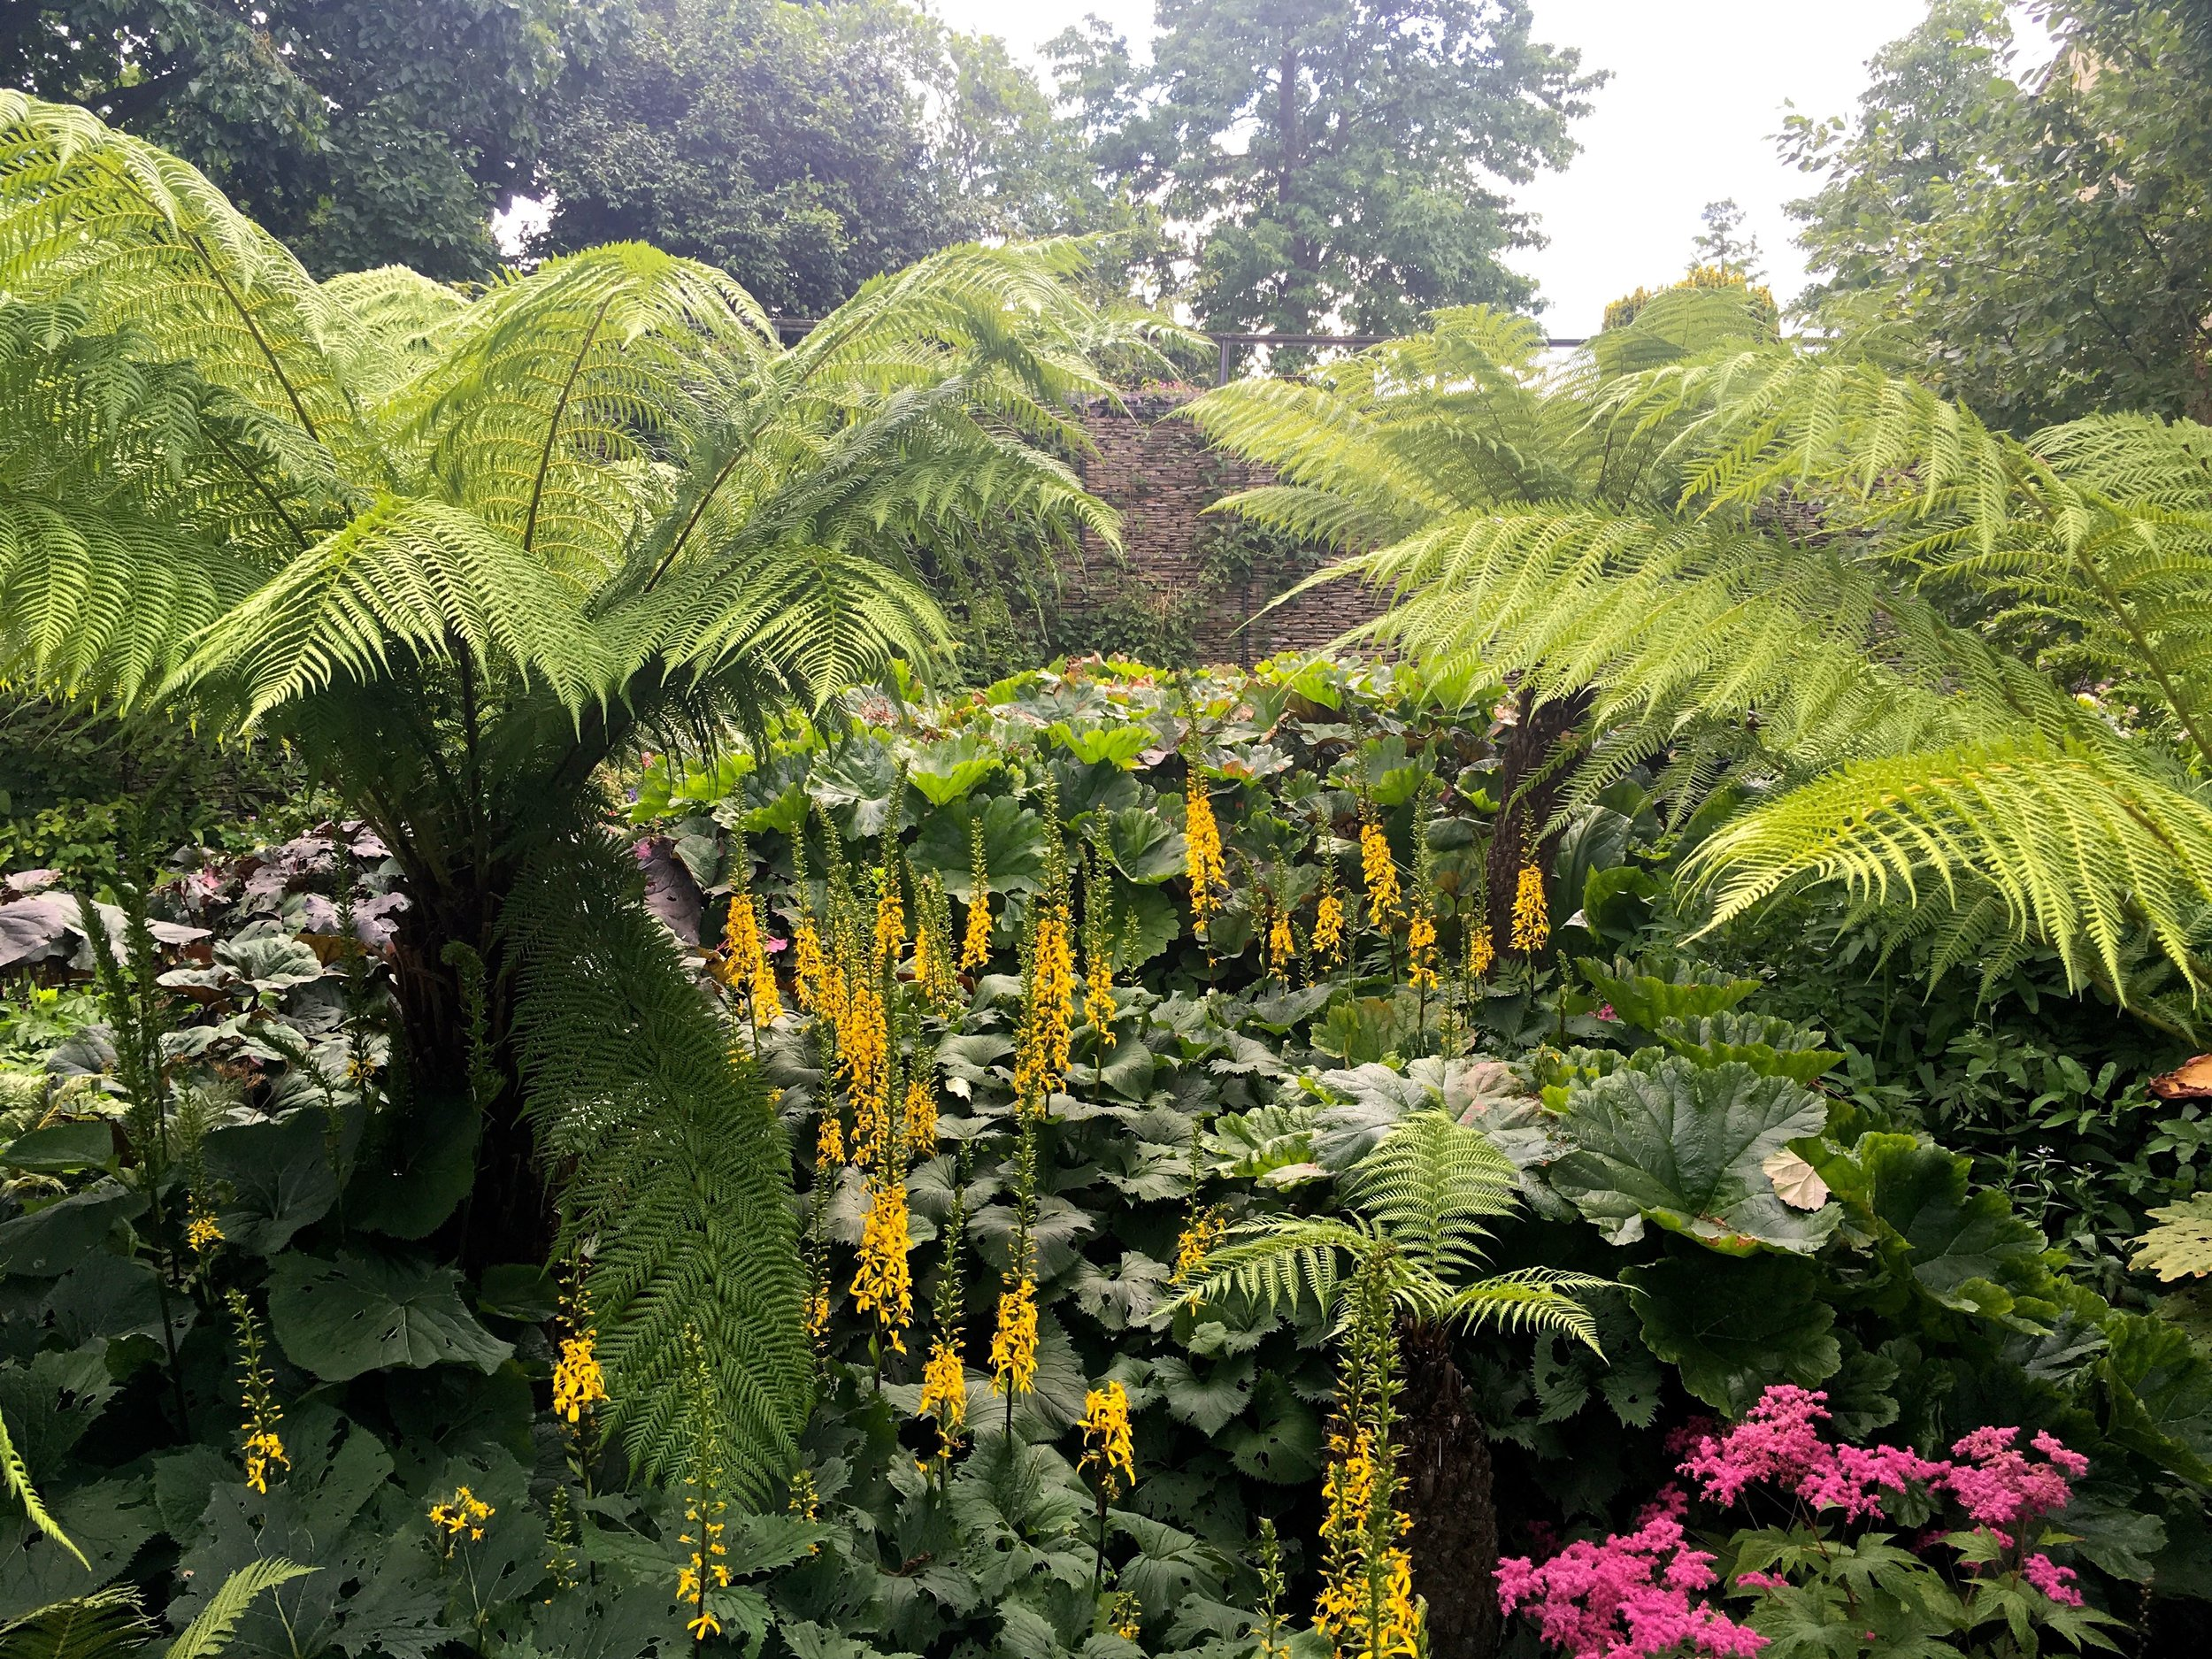 LUSCIOUS EXOTICS IN THE BOGGY AREA in the Robinsons garden at Hyde Hall in Essex